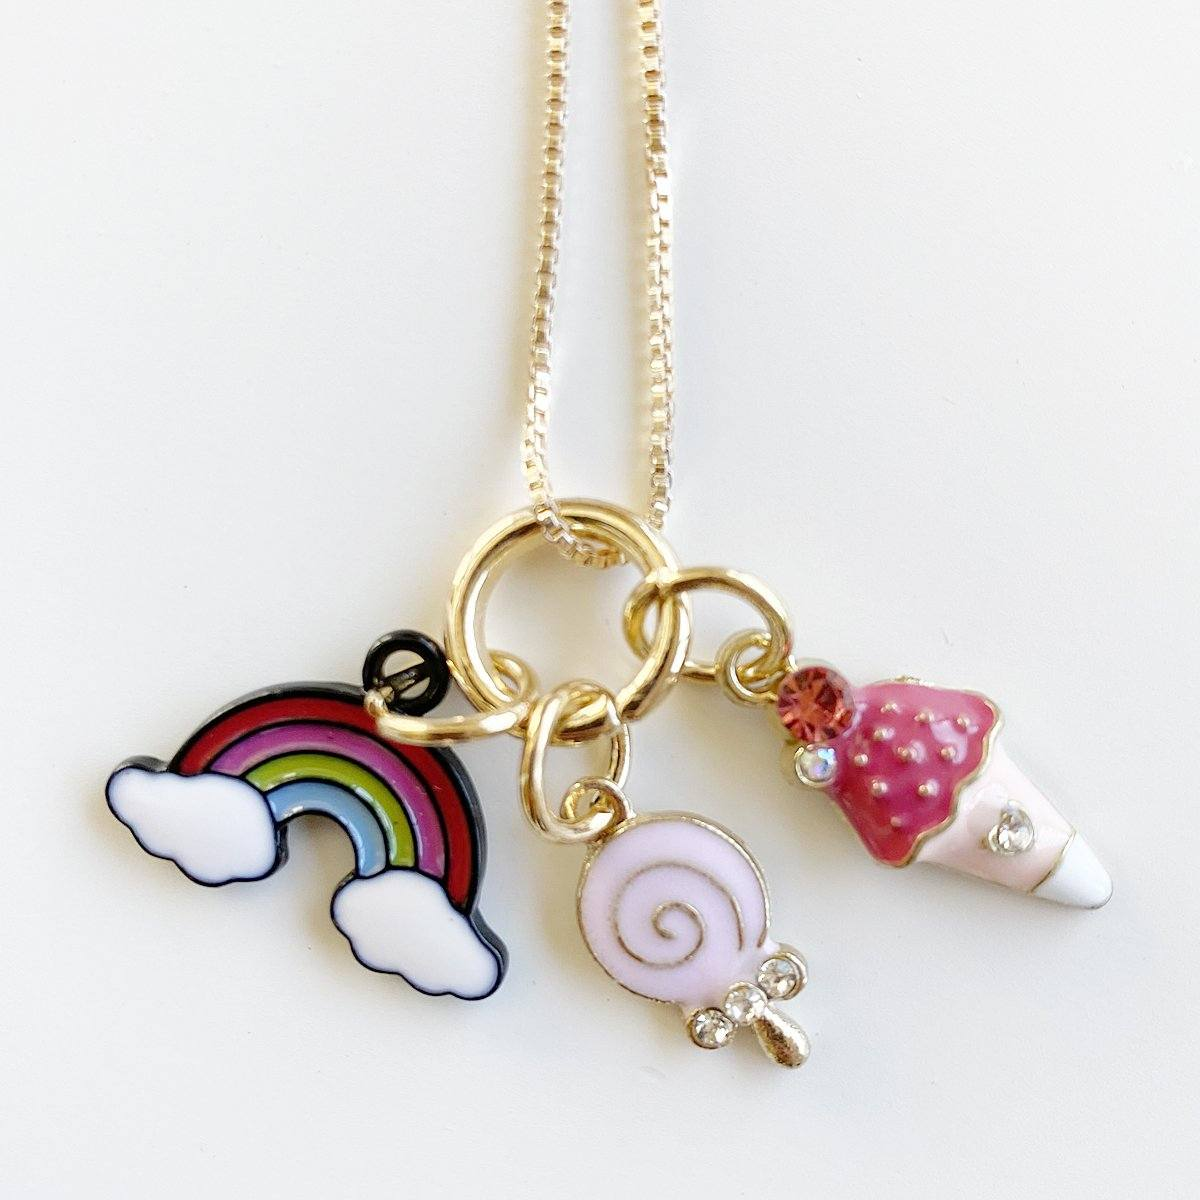 Rainbow Treats Charm Necklace